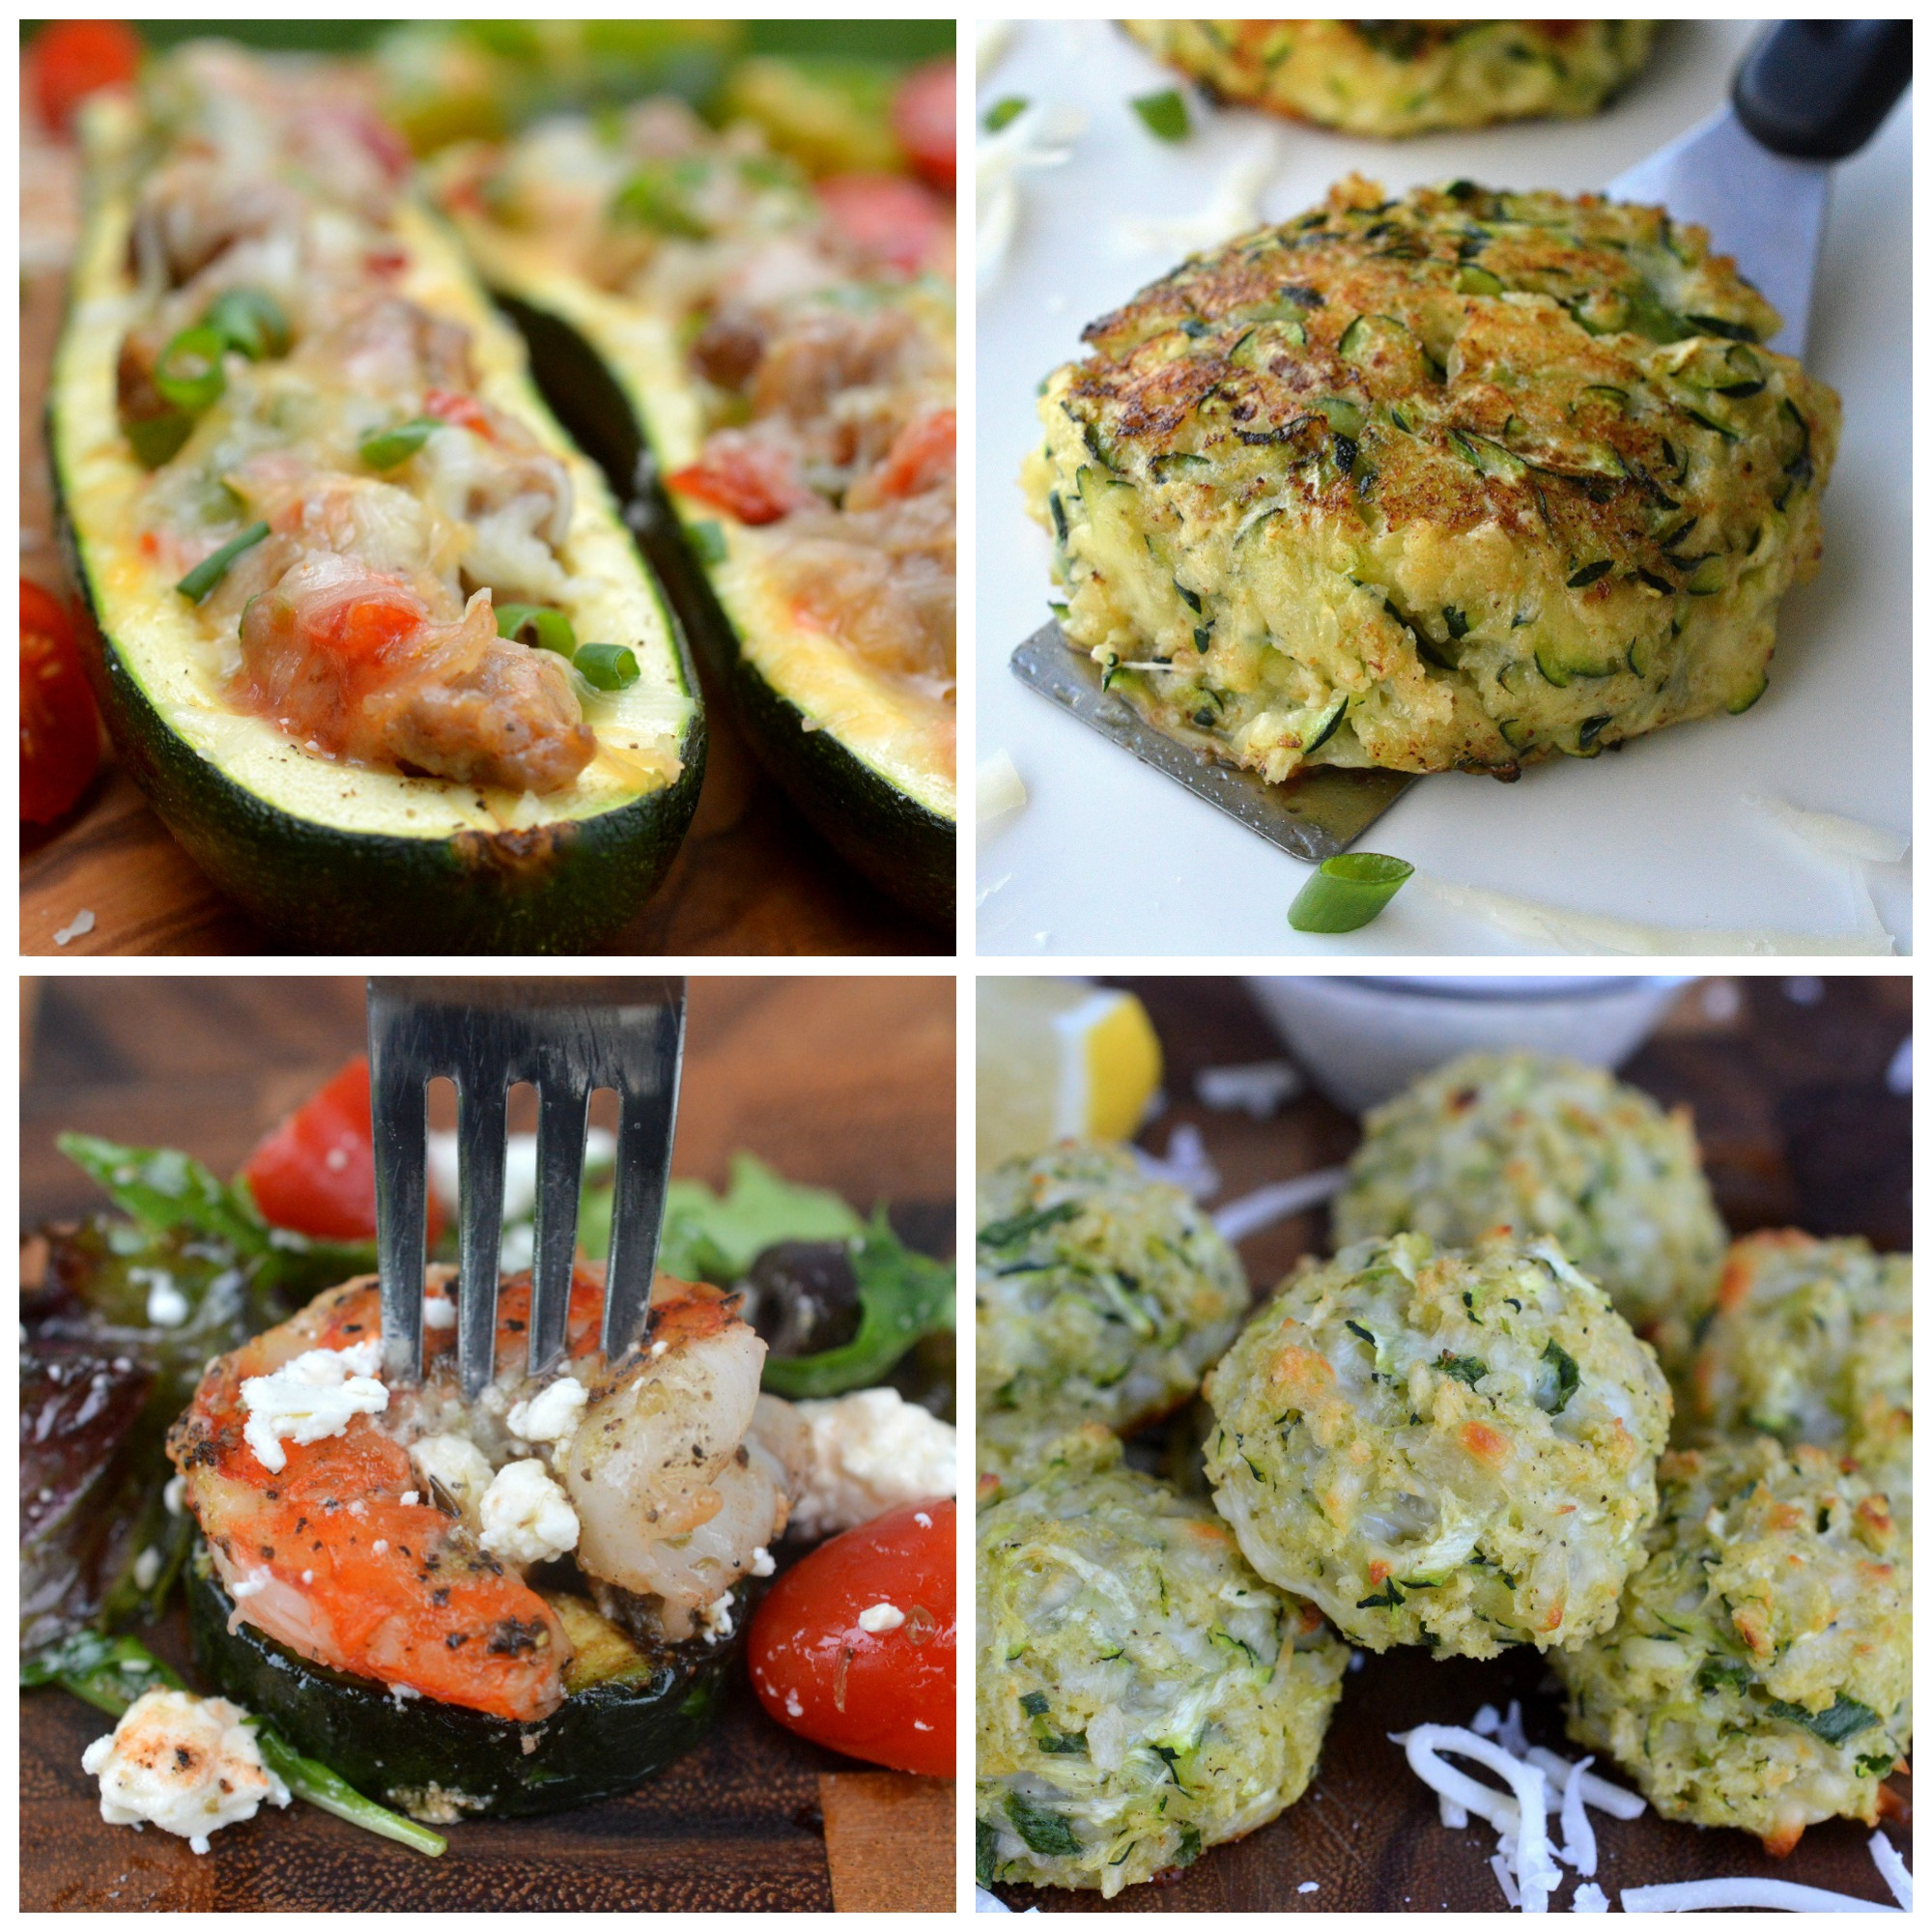 Recipes to make with zucchini